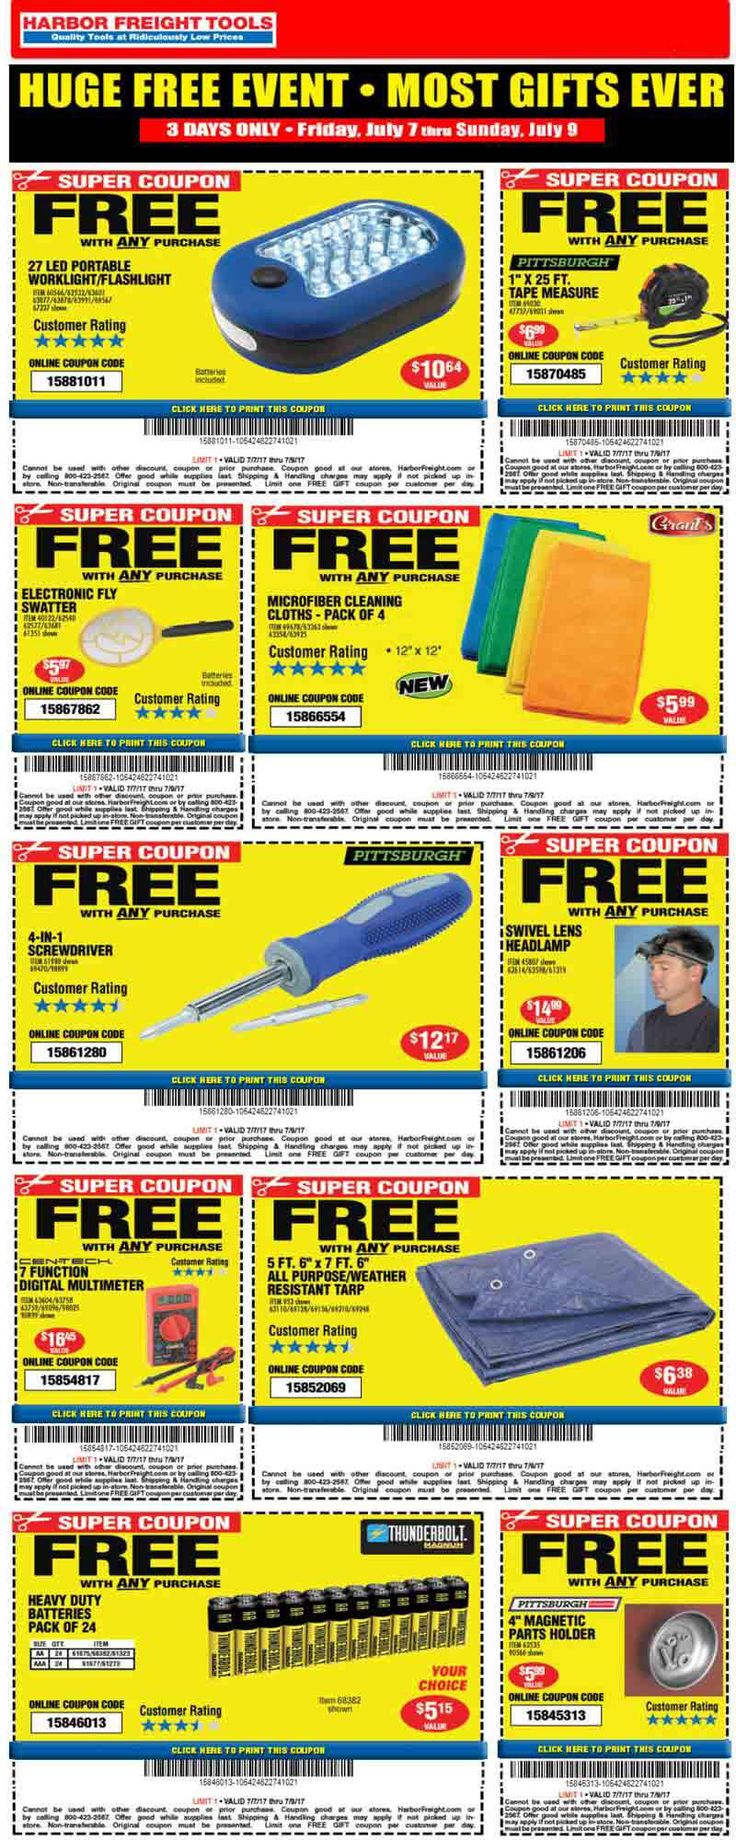 Bunch of free stuff with any purchase at Harbor Freight Tools (07/09)